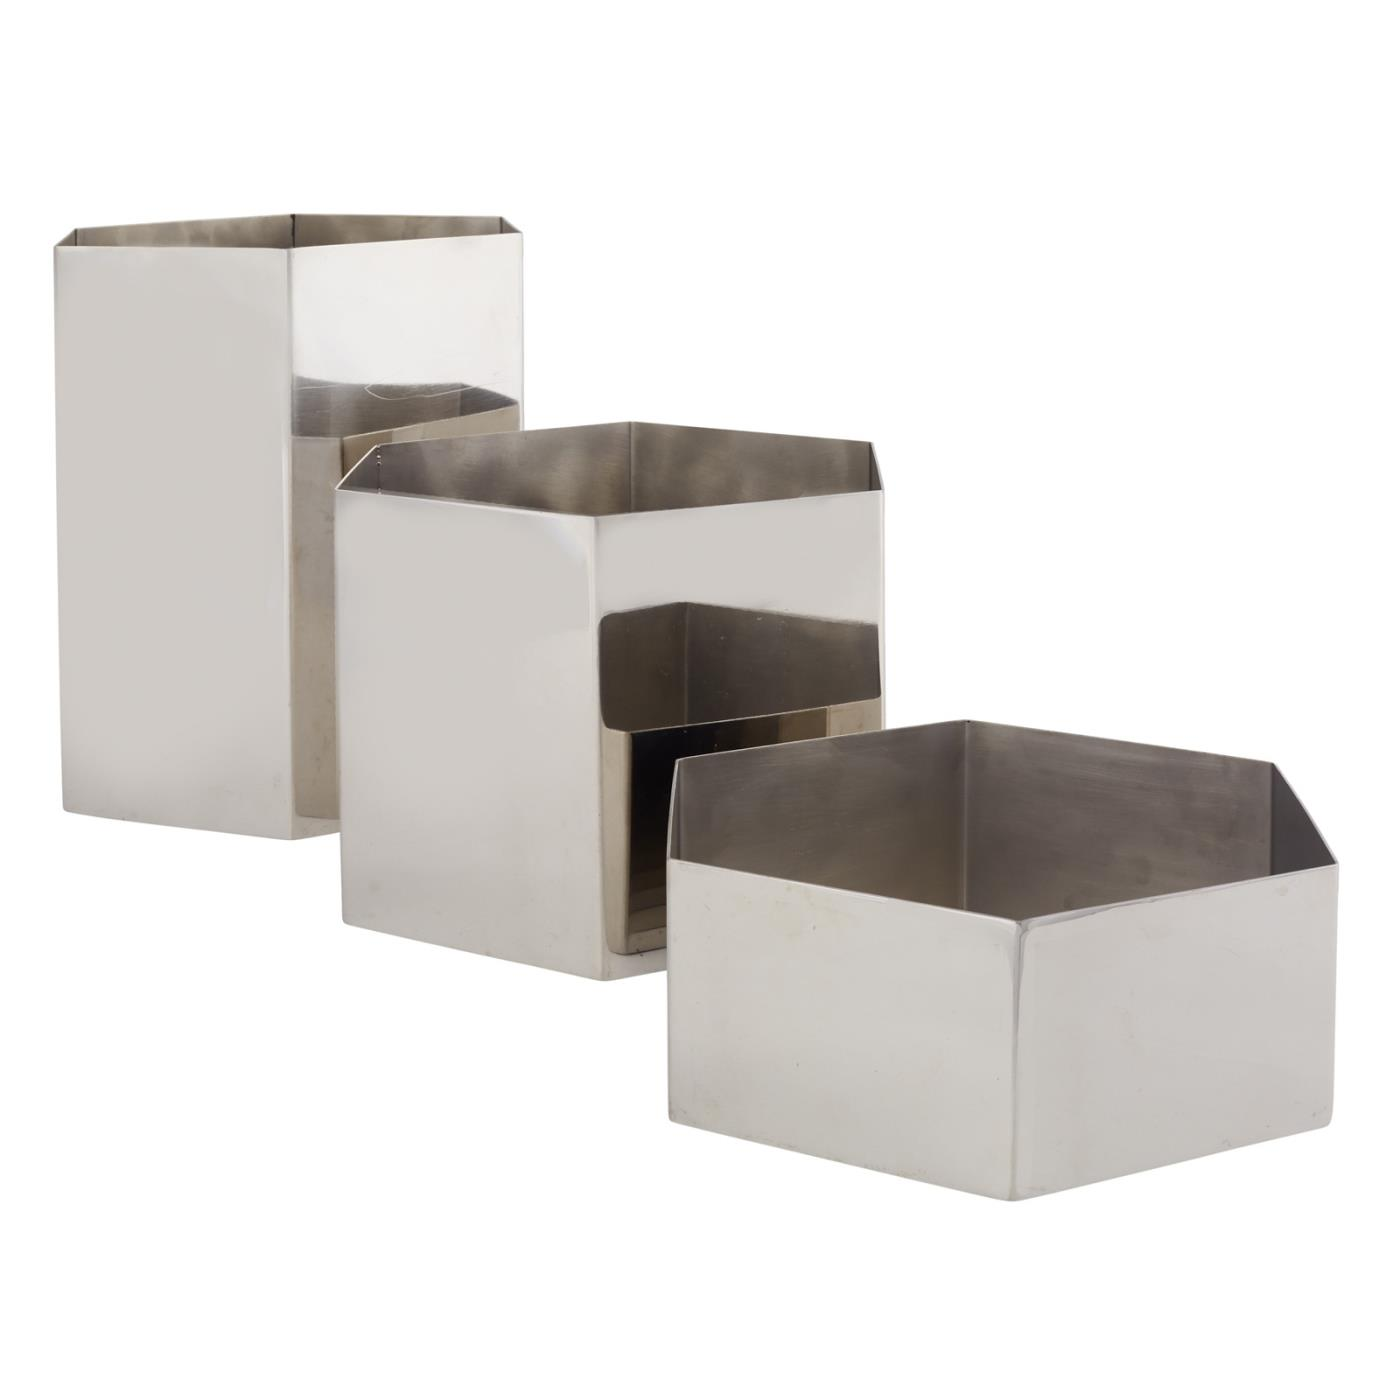 Risers (Set of 3)